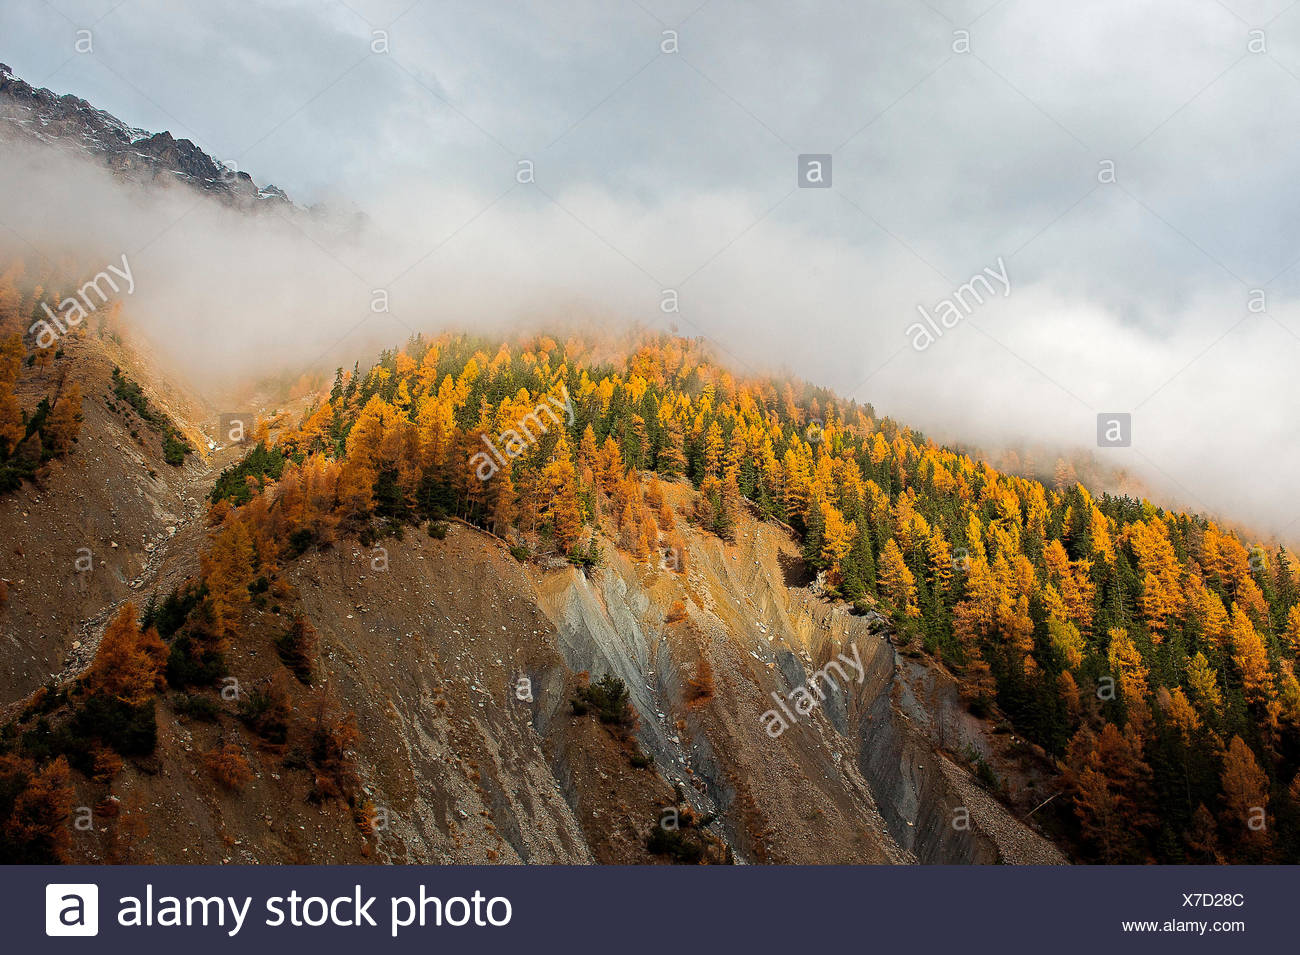 Val Zebru, Bormio, Lombardy, Italy One glimmer of light is the space between the clouds and illuminates the Val Zebru - Stock Image